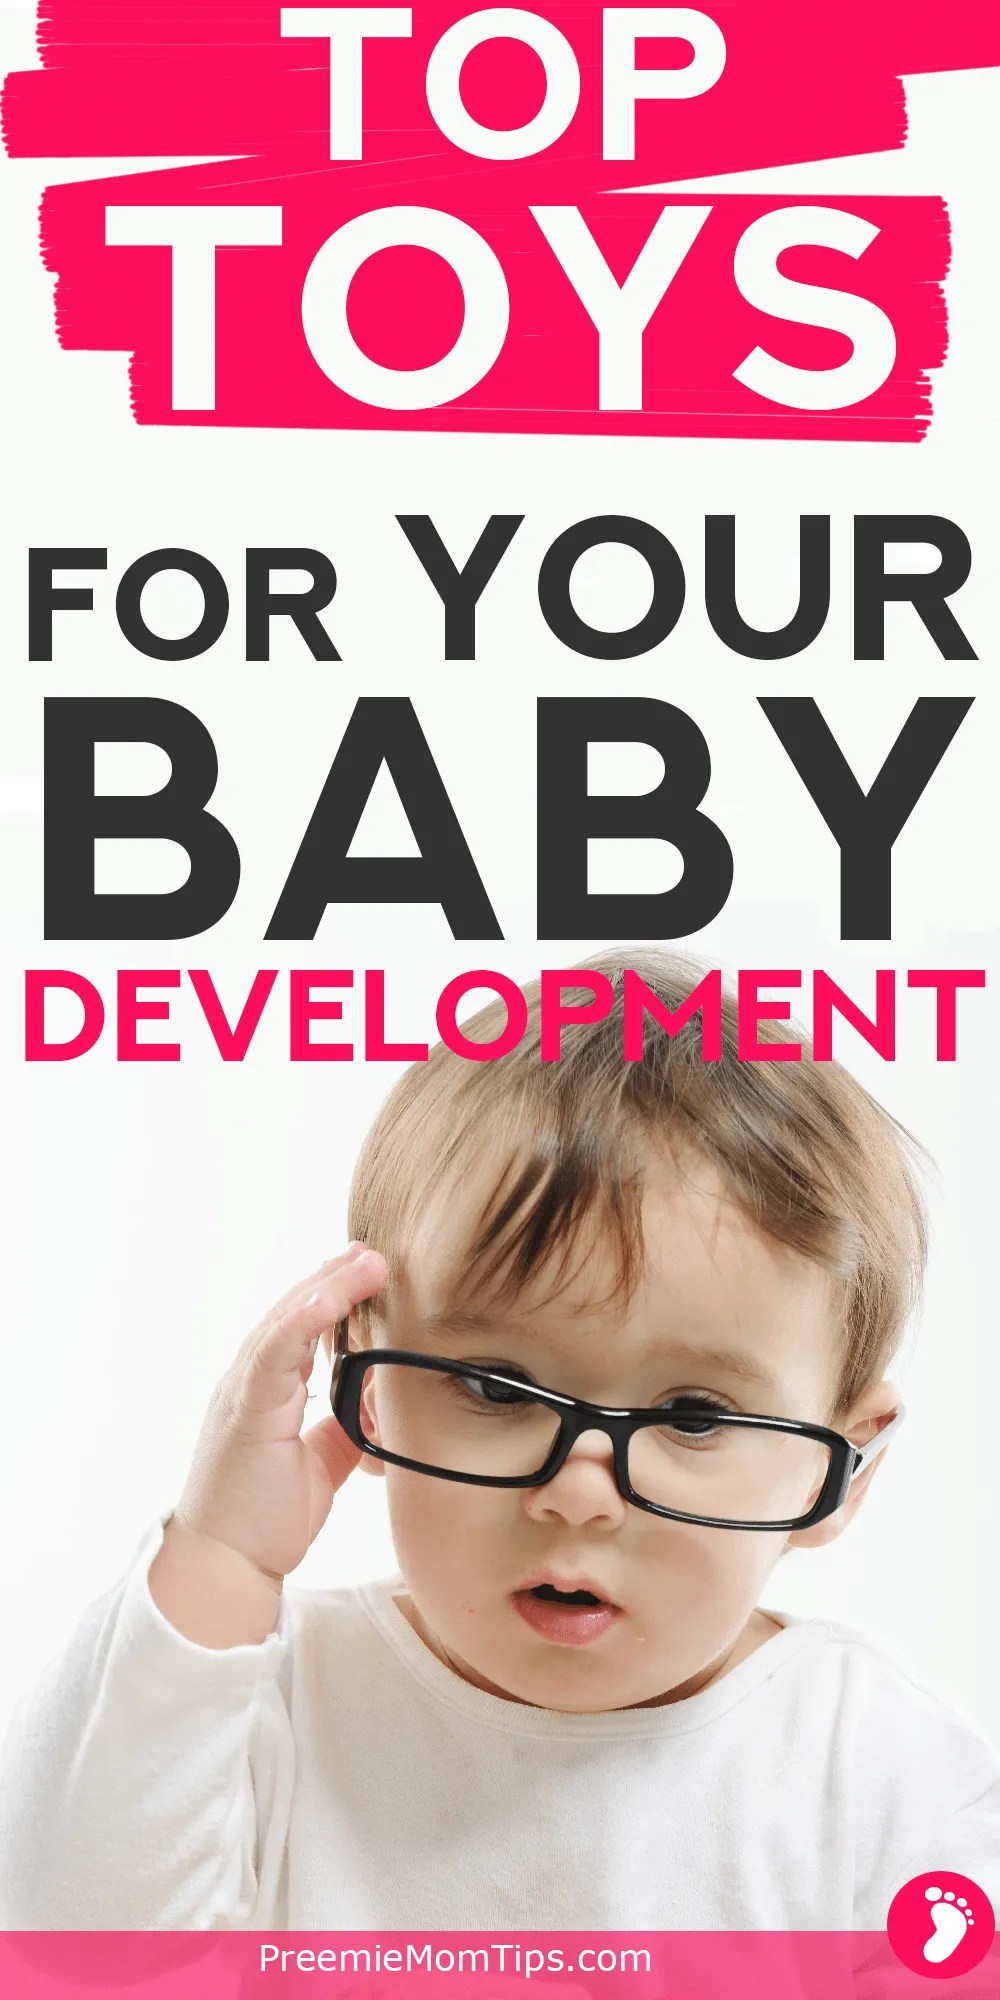 Don't know what to get for your new baby? Get something that will boost your baby's brain! Give him a developmental push in the right direction with these toys all moms should get for their babies!